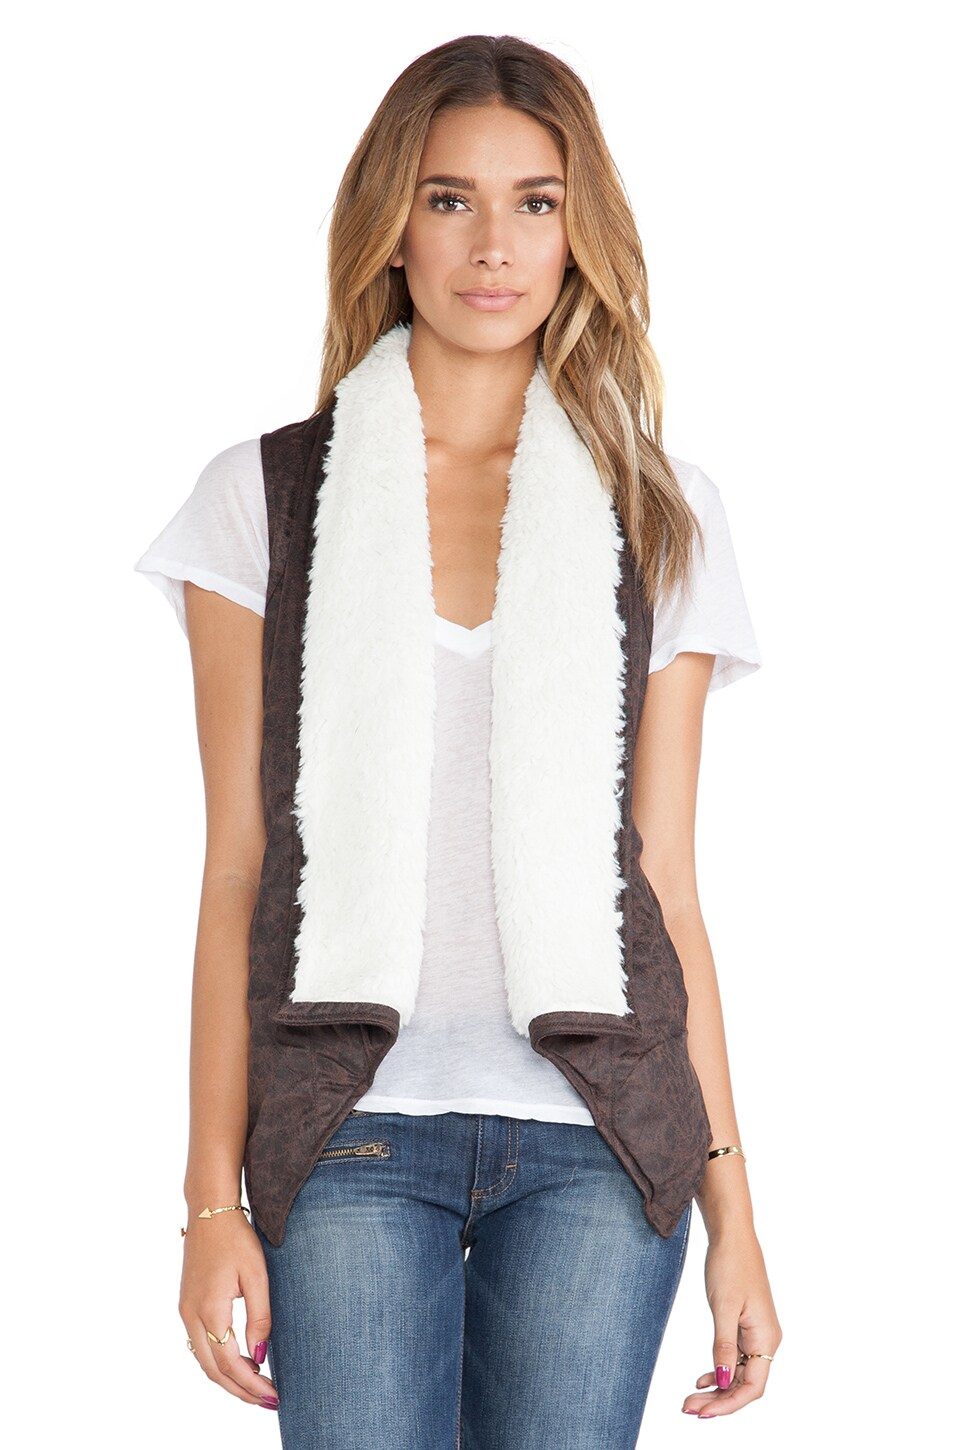 BB Dakota Decker Vest with Faux Fur Trim  in Espresso